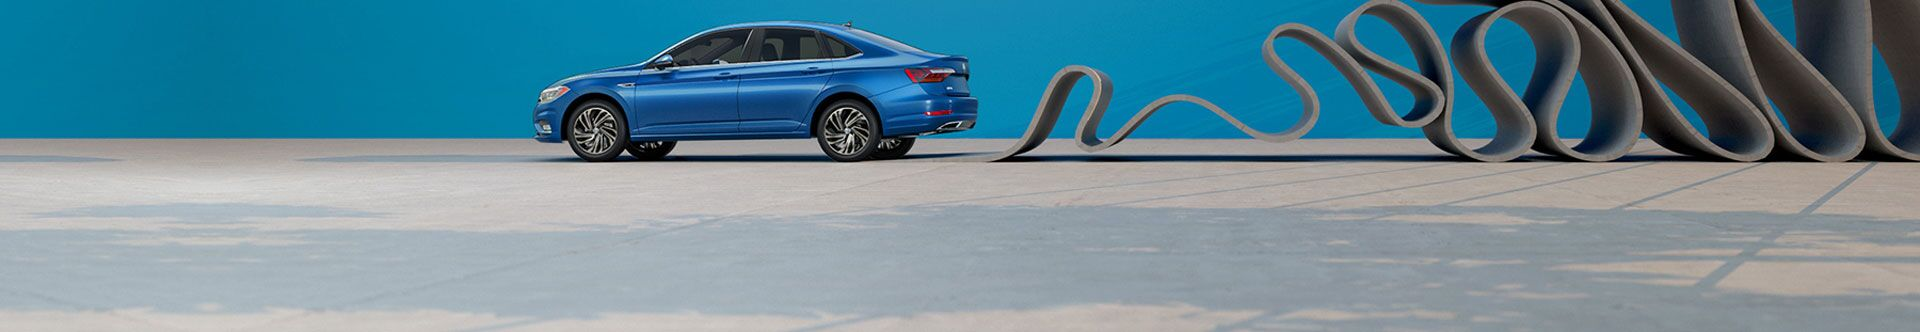 Start out ahead with the 2019 Volkswagen Jetta